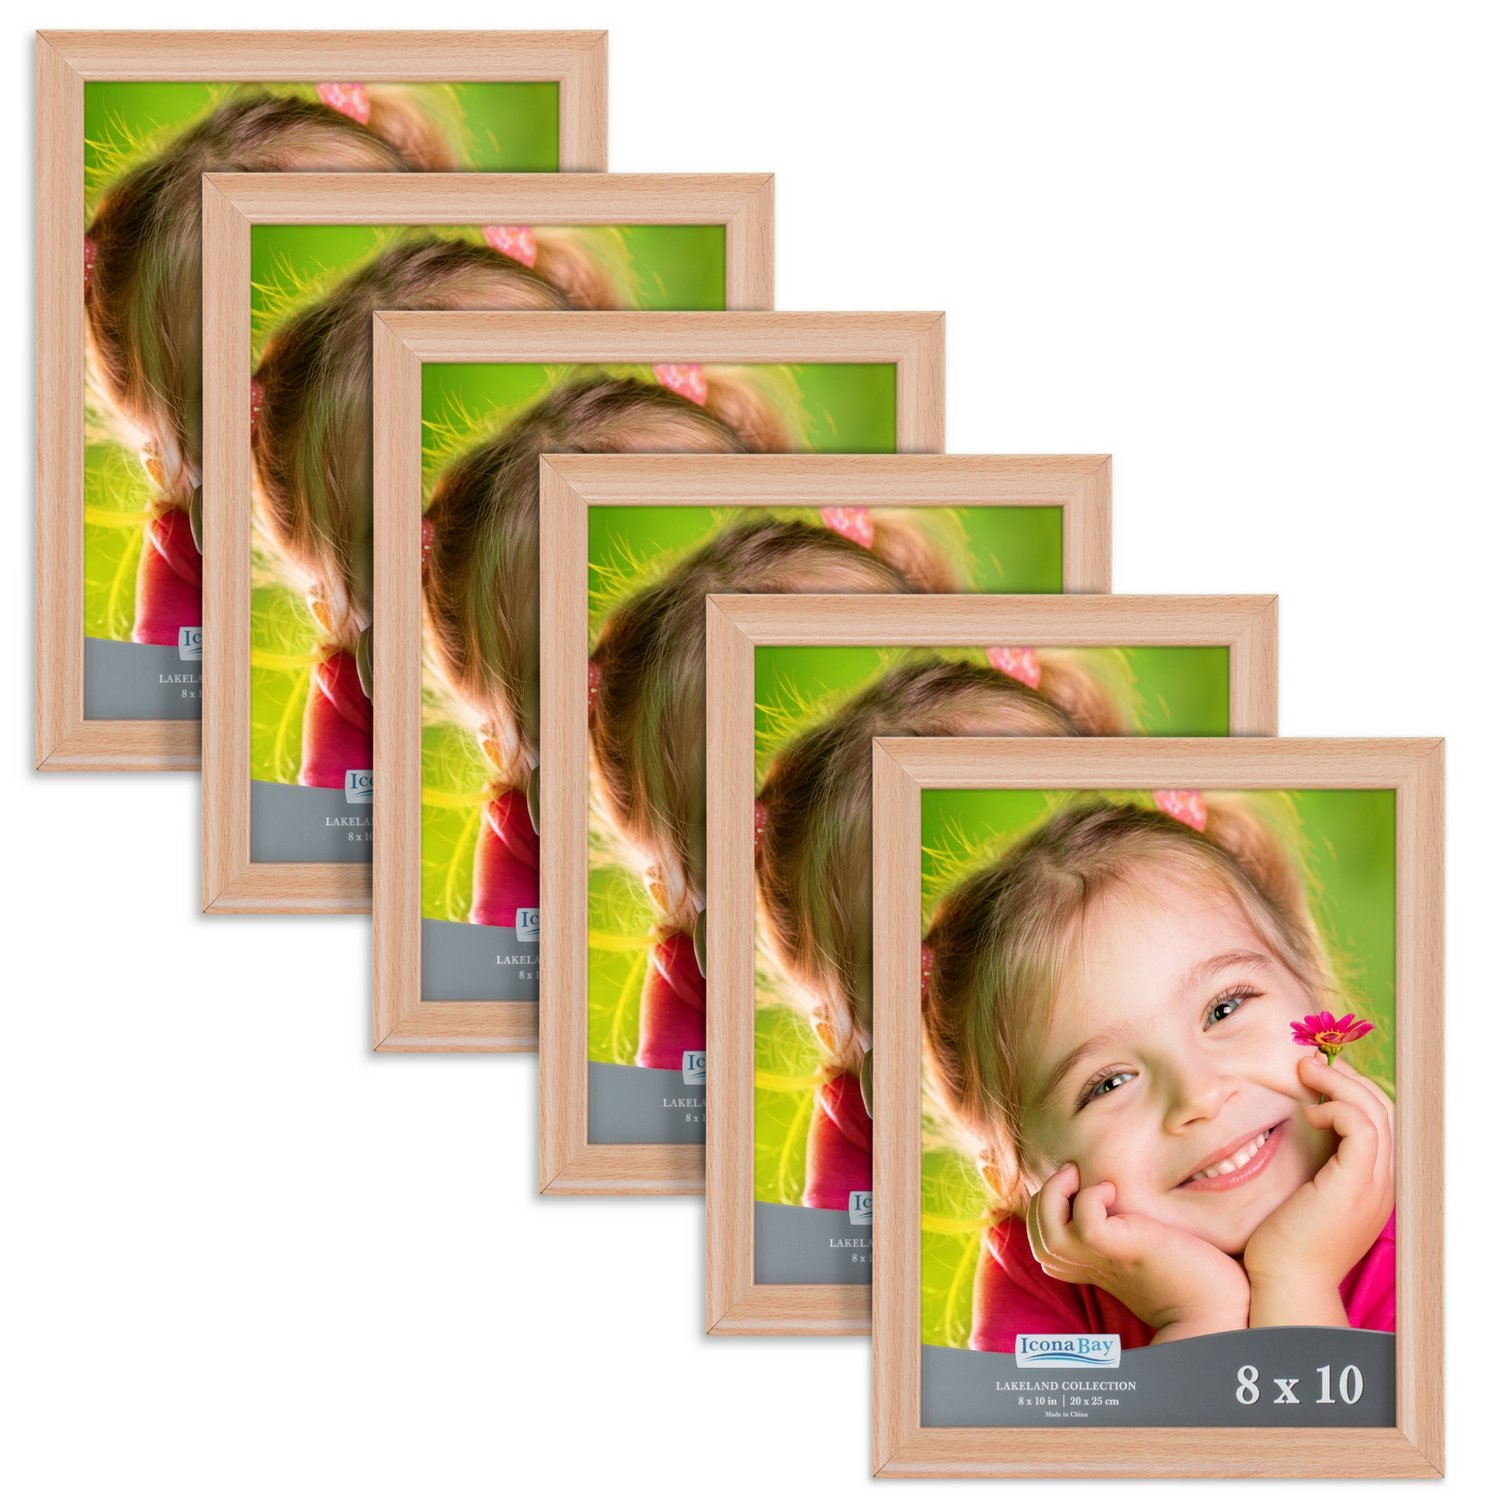 Icona Bay 8 by 10 Inch Picture Frames (8x10, 6 Pack, Beechwood Finish), Photo Frame Set For Wall Hang or Table Top, Lakeland Collection